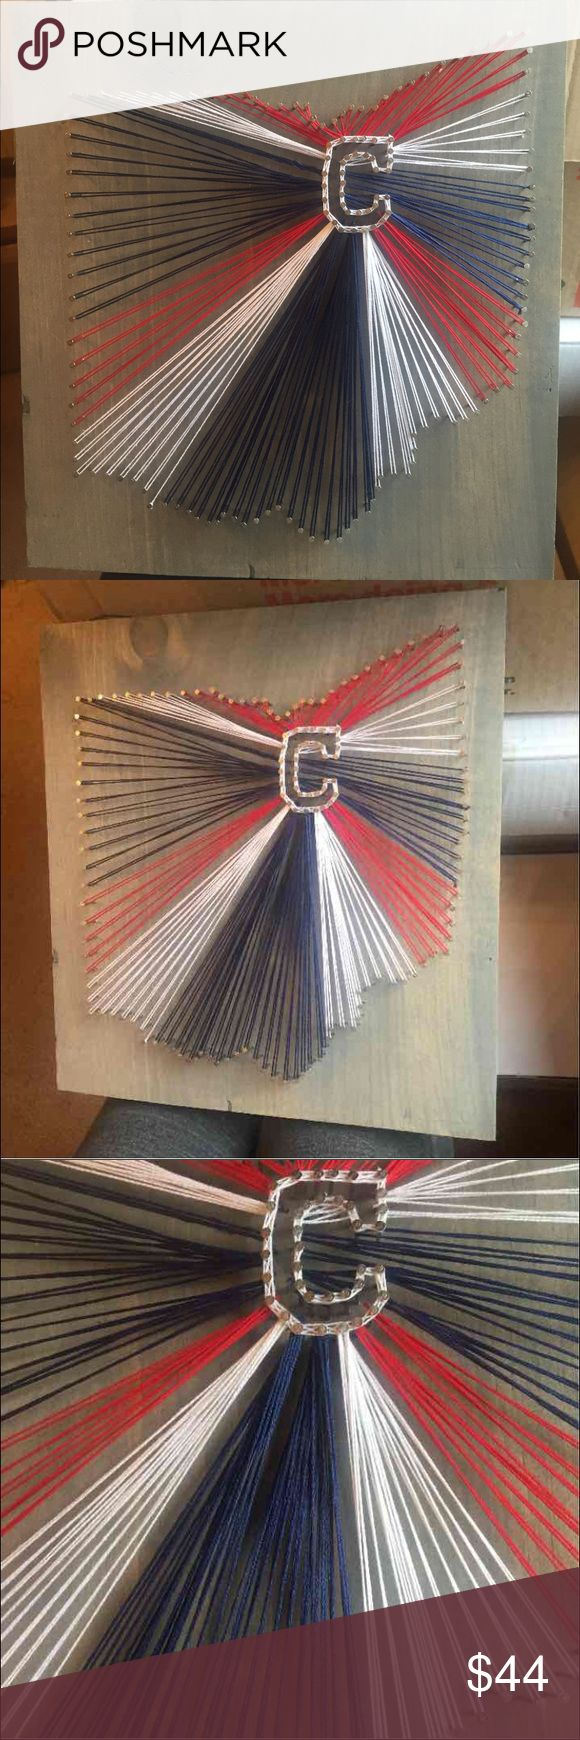 "Cleveland Indians Ohio string art Indians string art. Handmade. 12x11"" grey stain wood. Hanger on the back. Perfect for a gift Other"